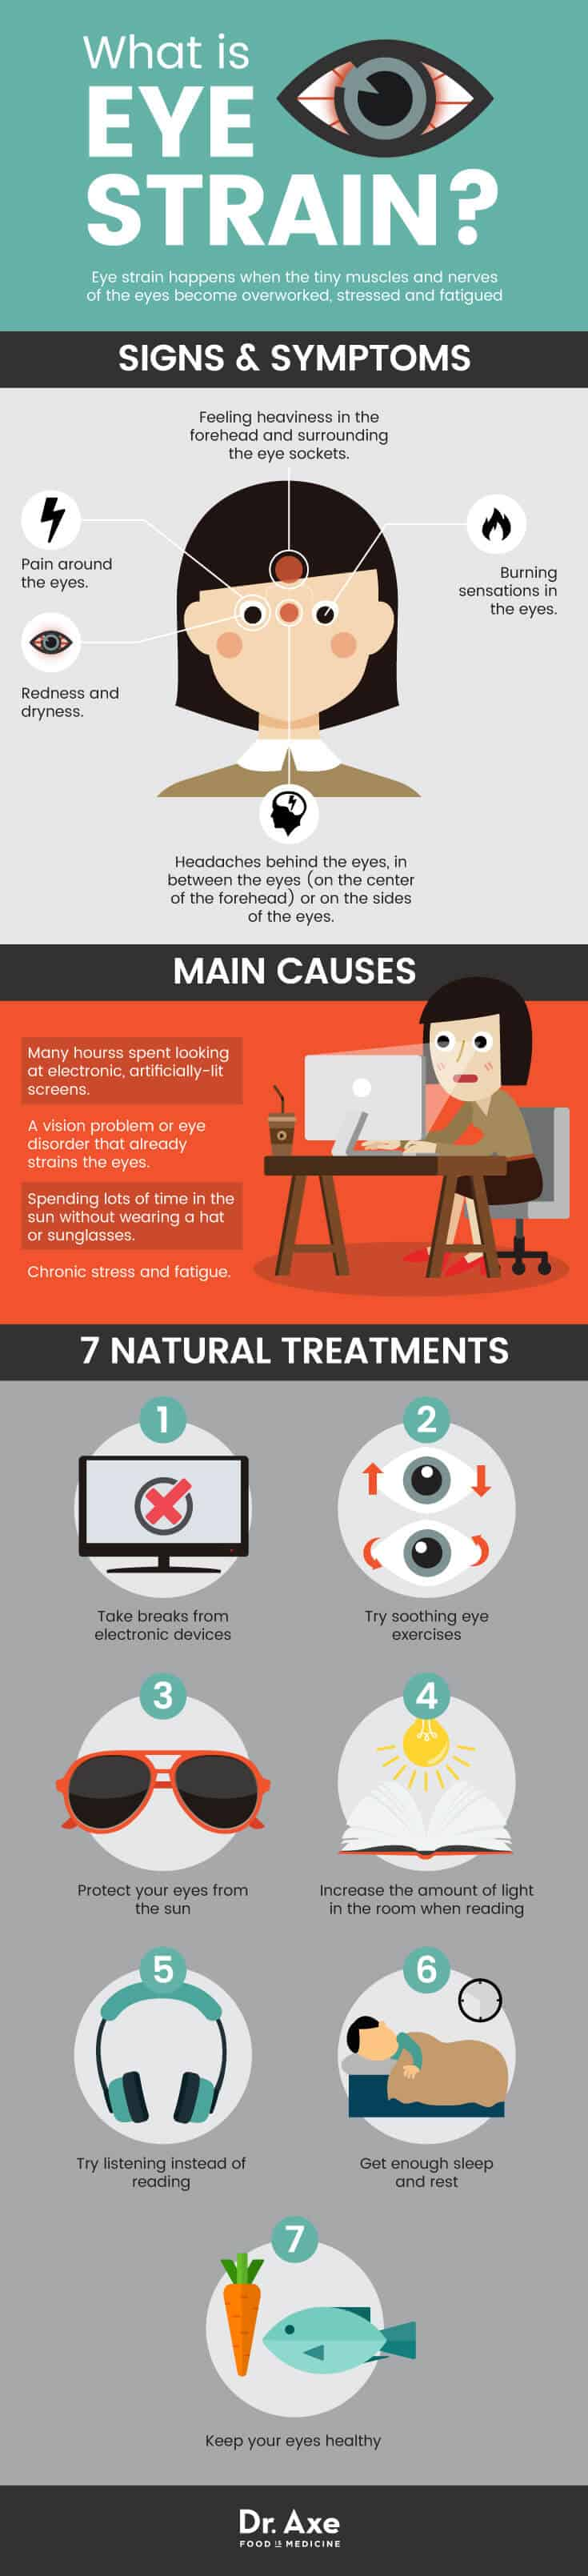 What is eye strain + natural treatments